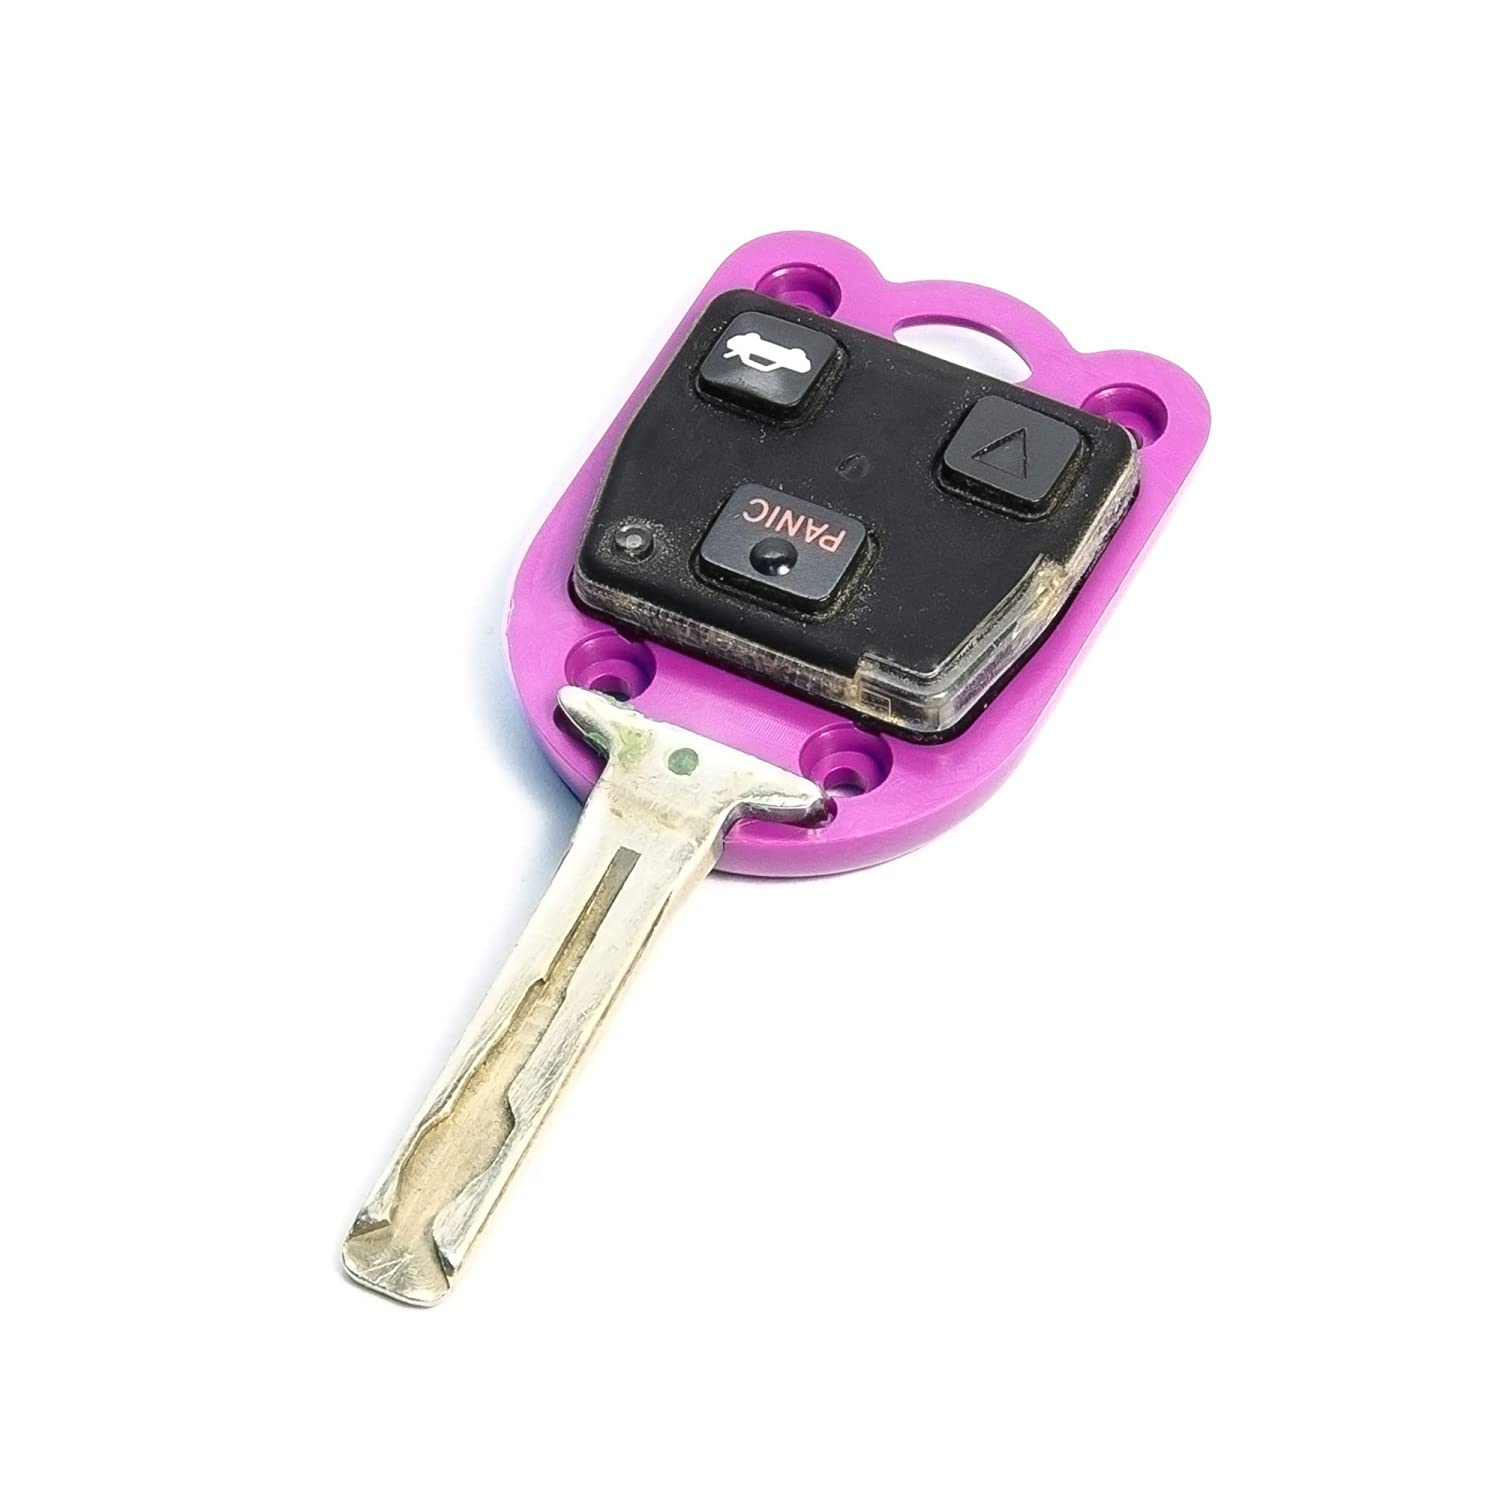 HYQ1512V Save money using your old key and chip! Black HYQ12BBT STAUBER Best Lexus Key Shell Replacement NO LOCKSMITH REQUIRED